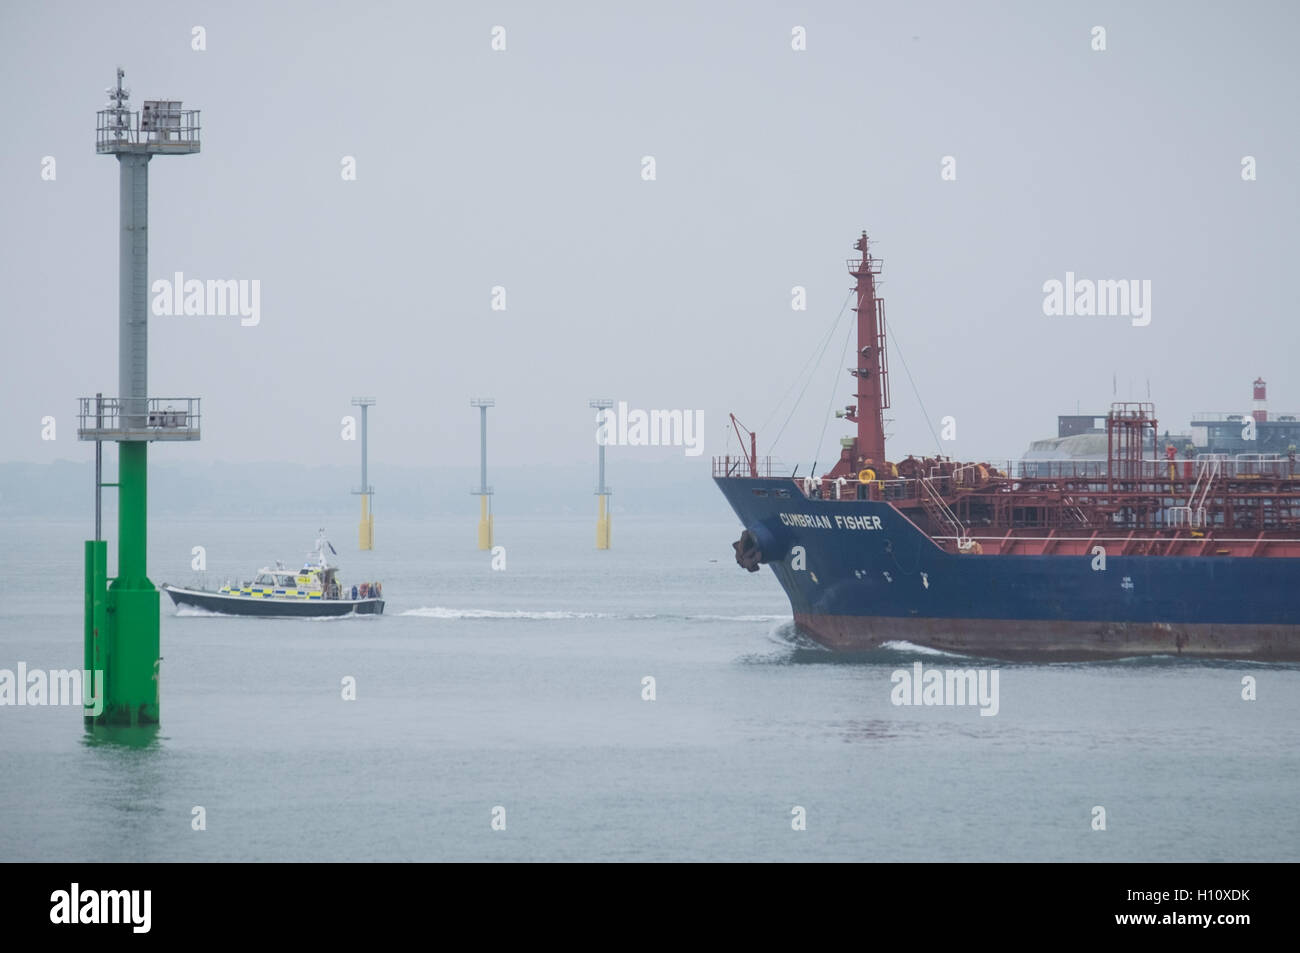 A freight ship, Cumbrian Fisher, sails out of Portsmouth Harbour past the navigation light piles that have been - Stock Image